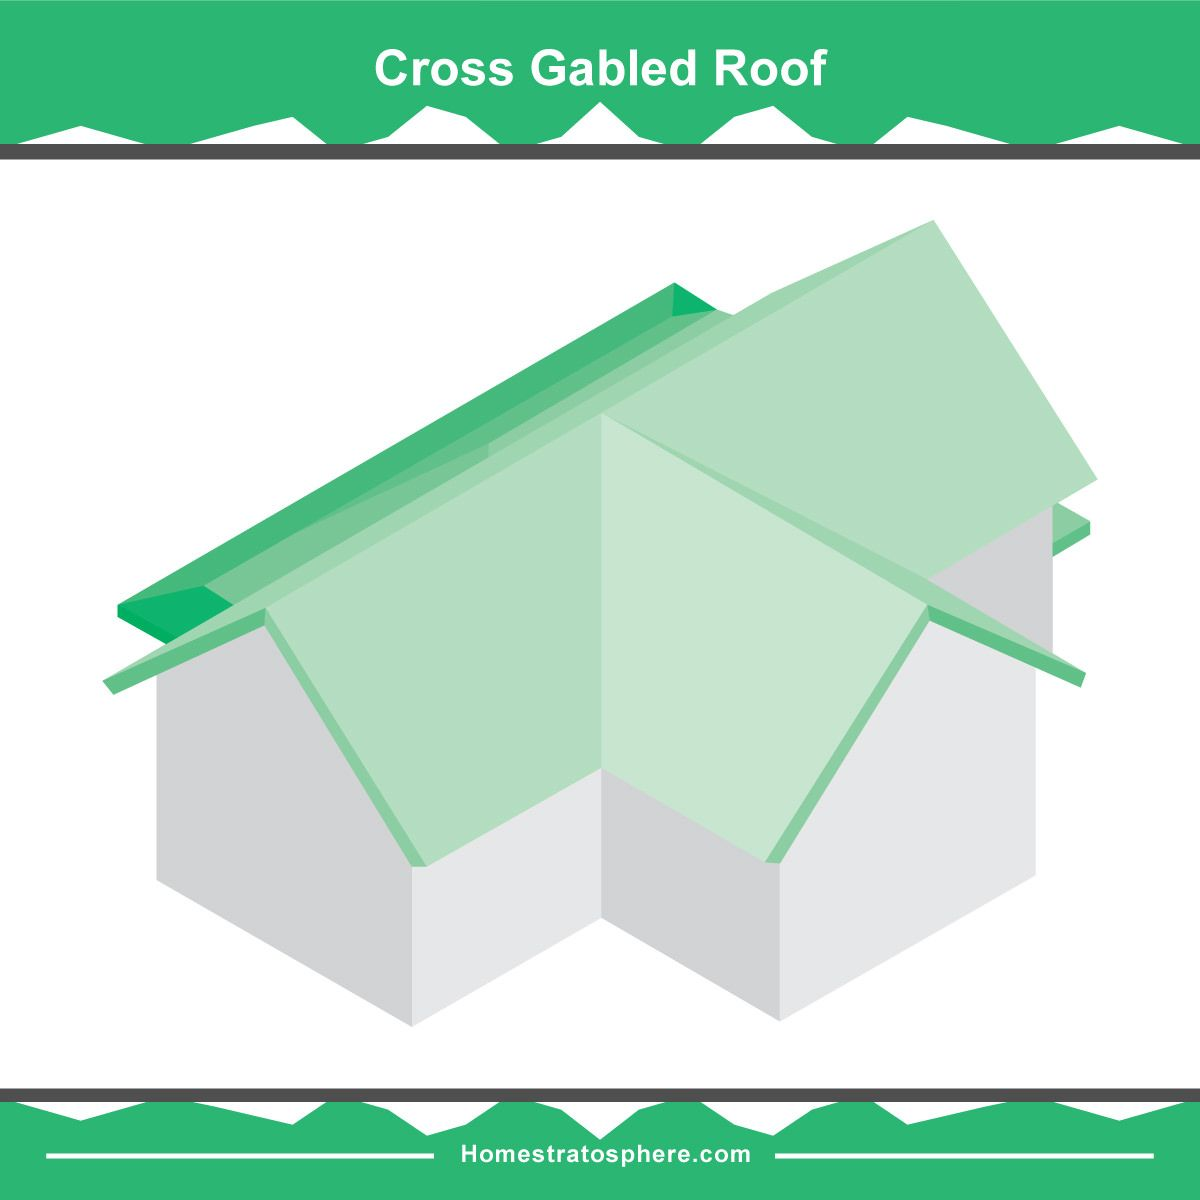 36 Types Of Roofs Styles For Houses Illustrated Roof Design